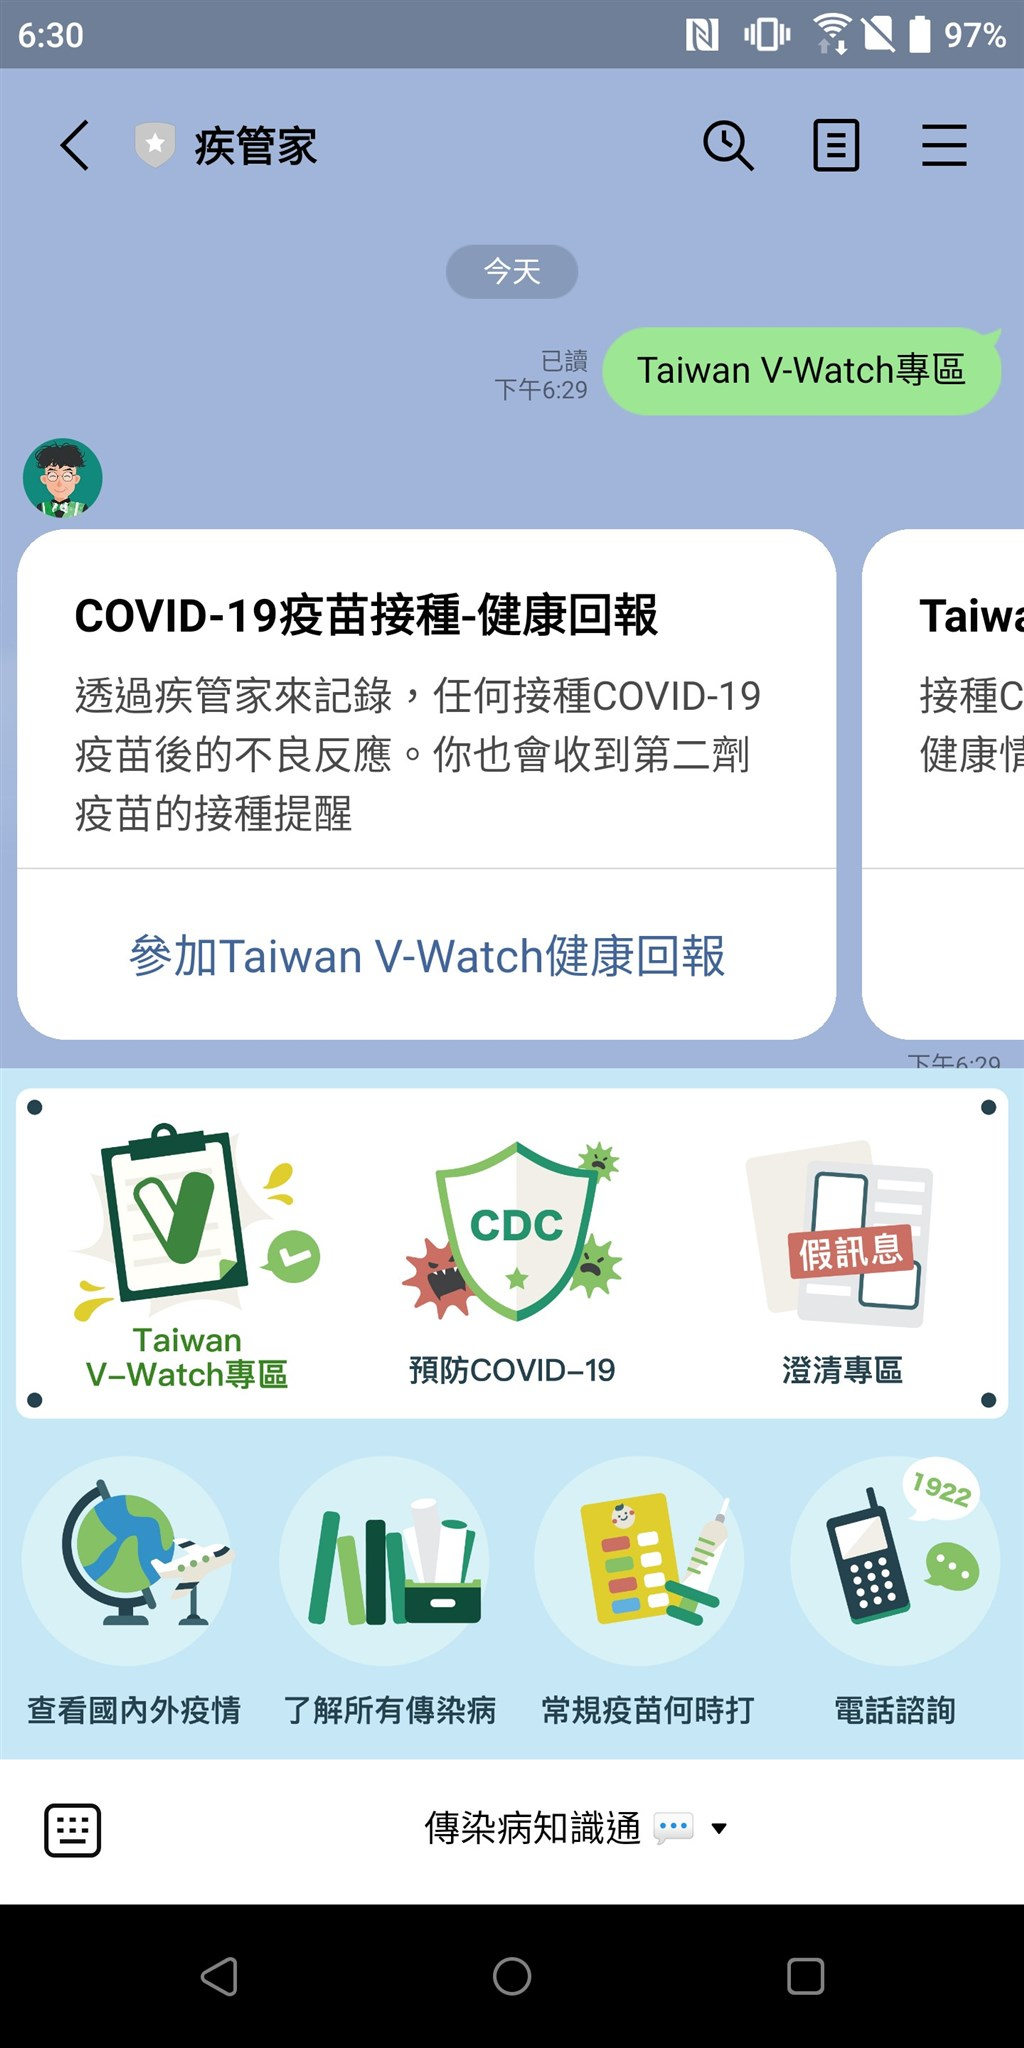 A screenshot of the V-Watch System. Photo from DeepQ